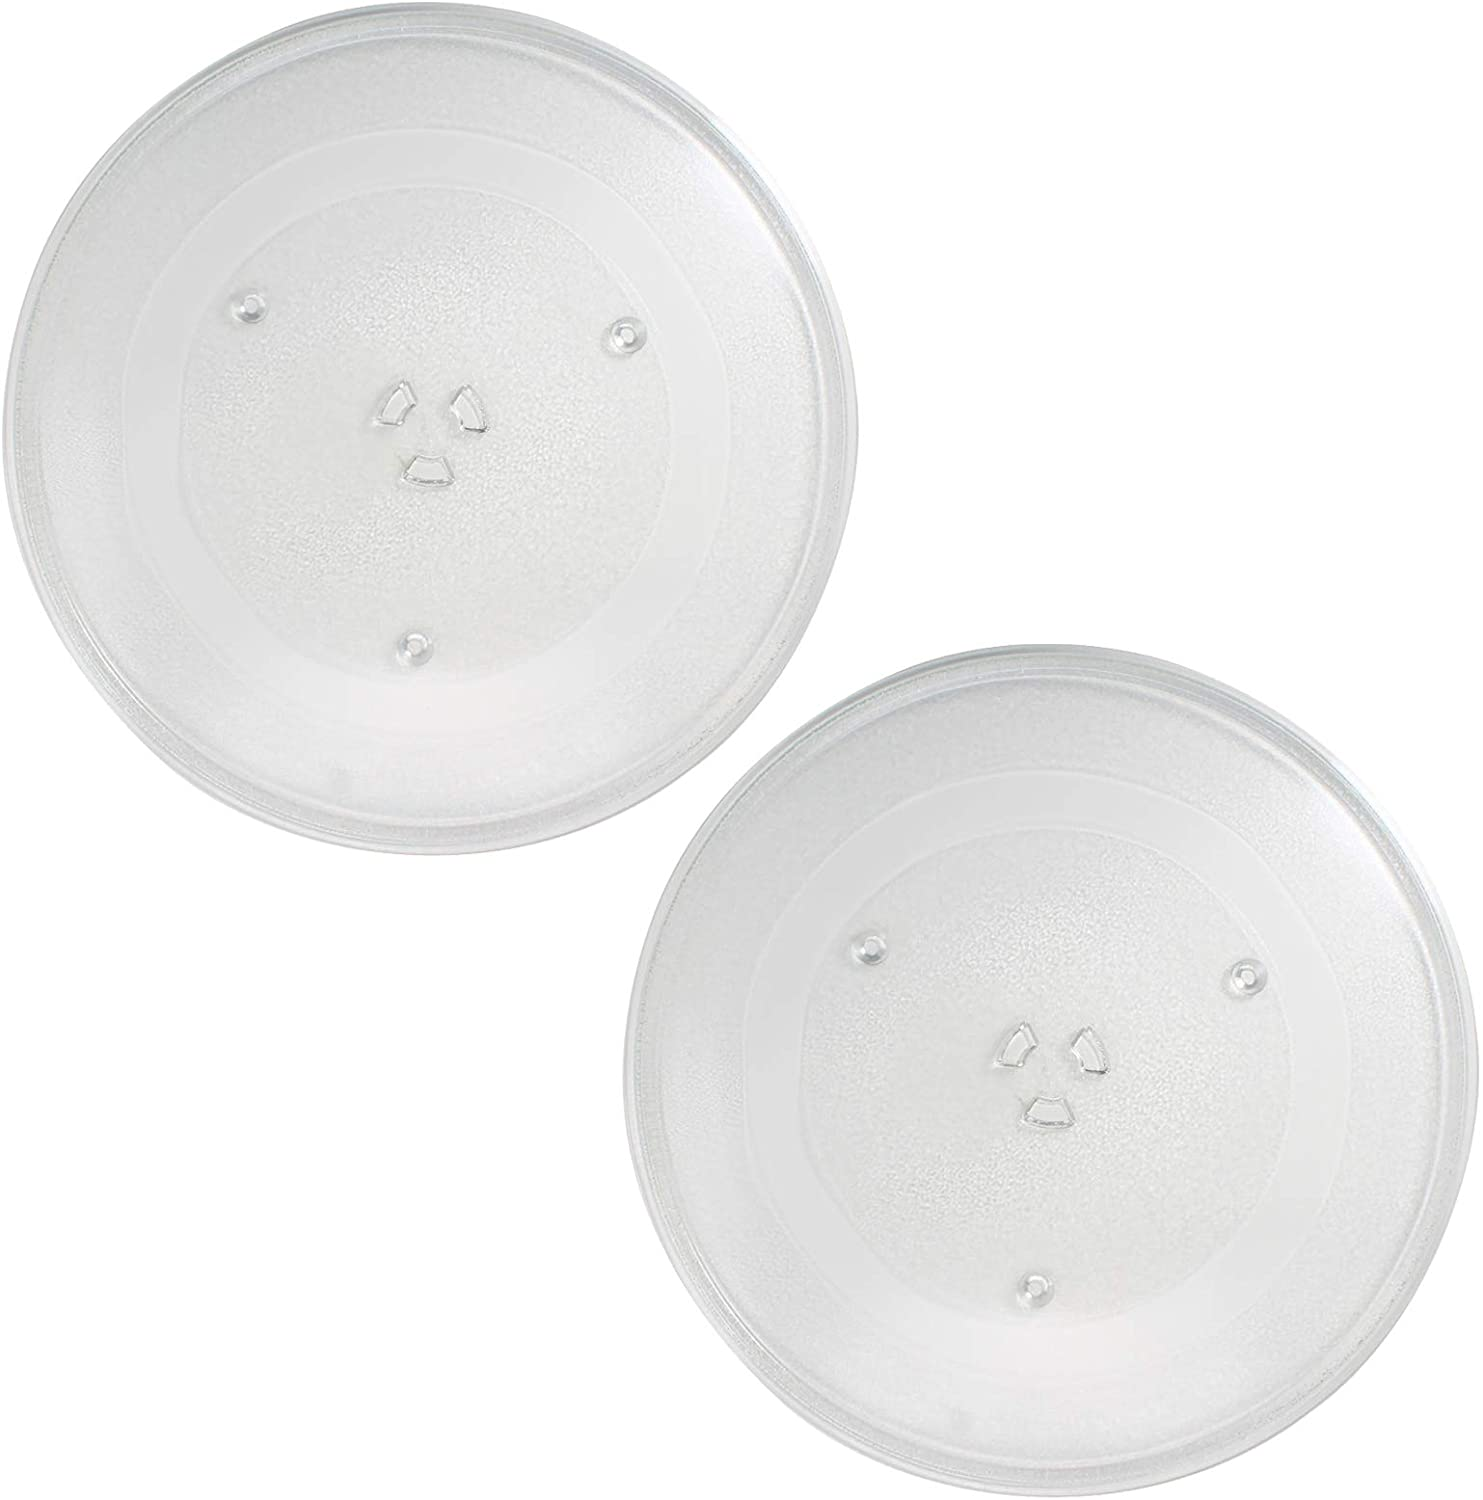 2-Pack WB49X10063 Microwave Glass Turntable Plate Replacement for General Electric PVM2070DM3CC - Compatible with WB49X10063 14 1/8 Inch Glass Tray